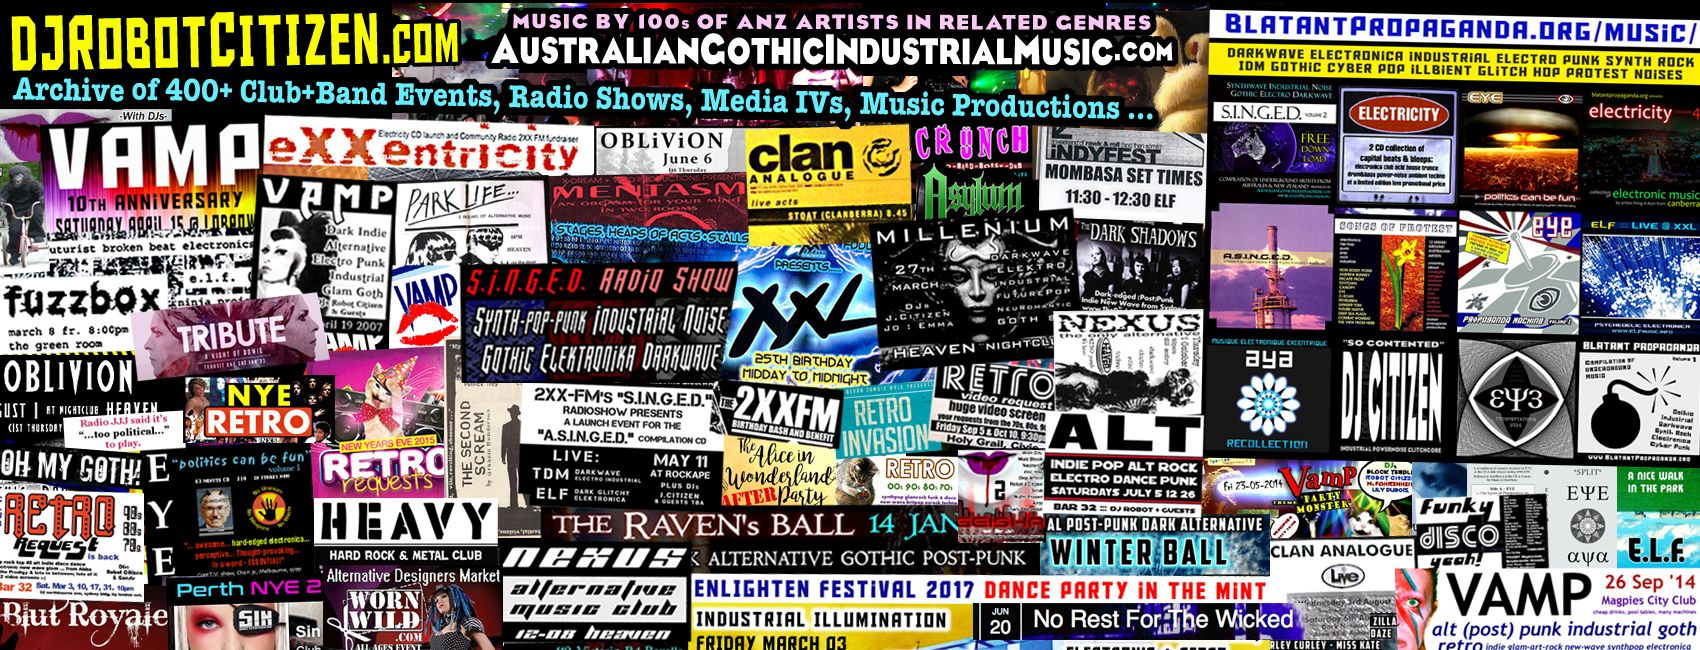 Australian Canberra Nightclubs Alternative Industrial Gothic Goth Electronic Dance Punk Rock Heavy Metal Music Subculture Club Scene History Canberran Clubs Events DJs DJ Robot Citizen Australia Photos People Flyers Posters